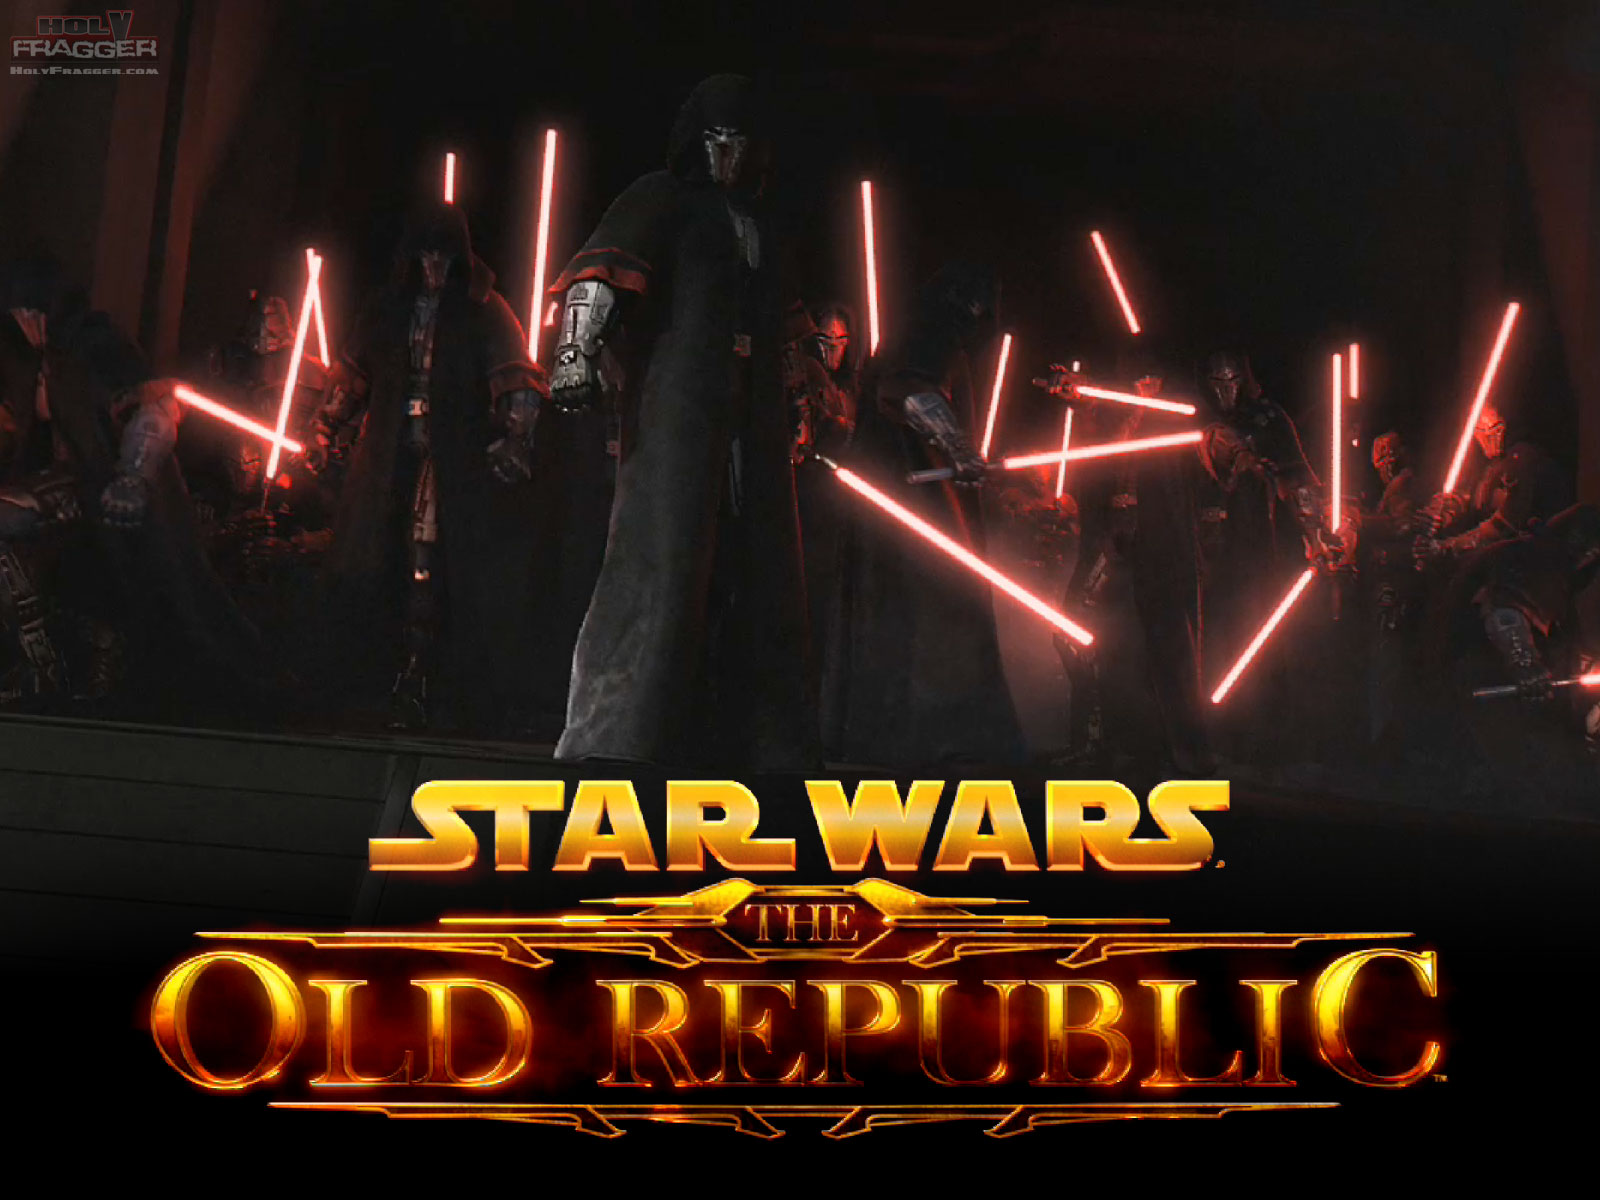 http://4.bp.blogspot.com/-VDstdKsika0/UF40GKq_CJI/AAAAAAAAICk/J2NRppWxsOY/s1600/star-wars-the-old-republic-wallpaper-16.jpg